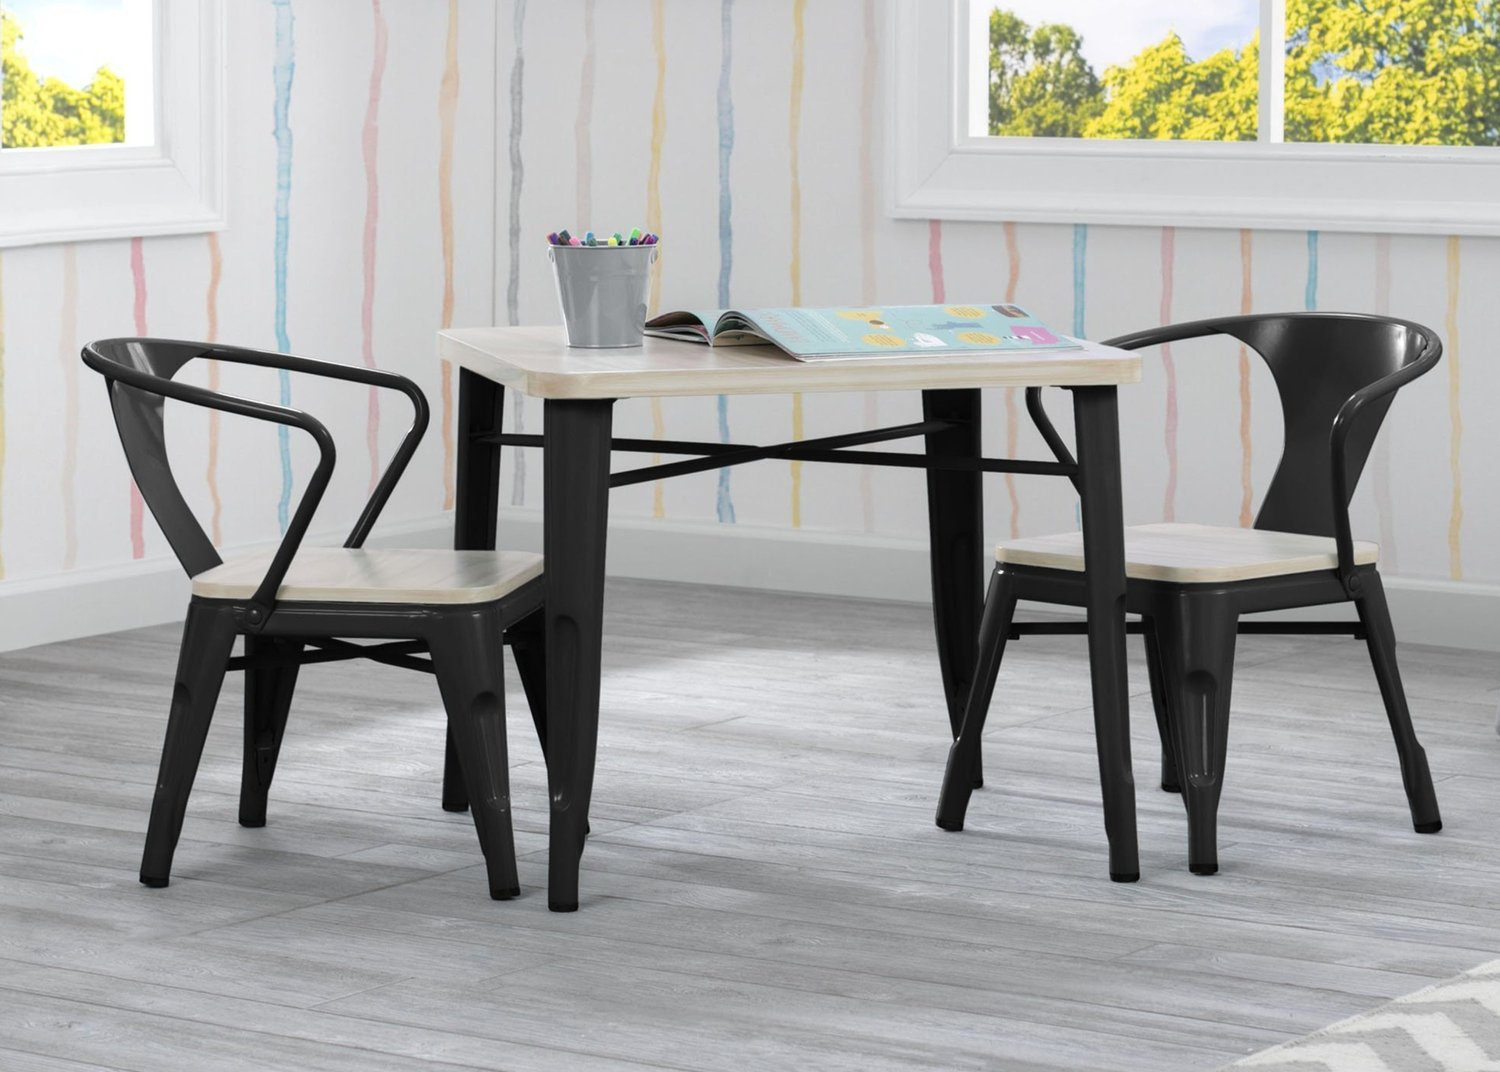 Delta Bistro Kids Table and Chair Set in Black and Natural